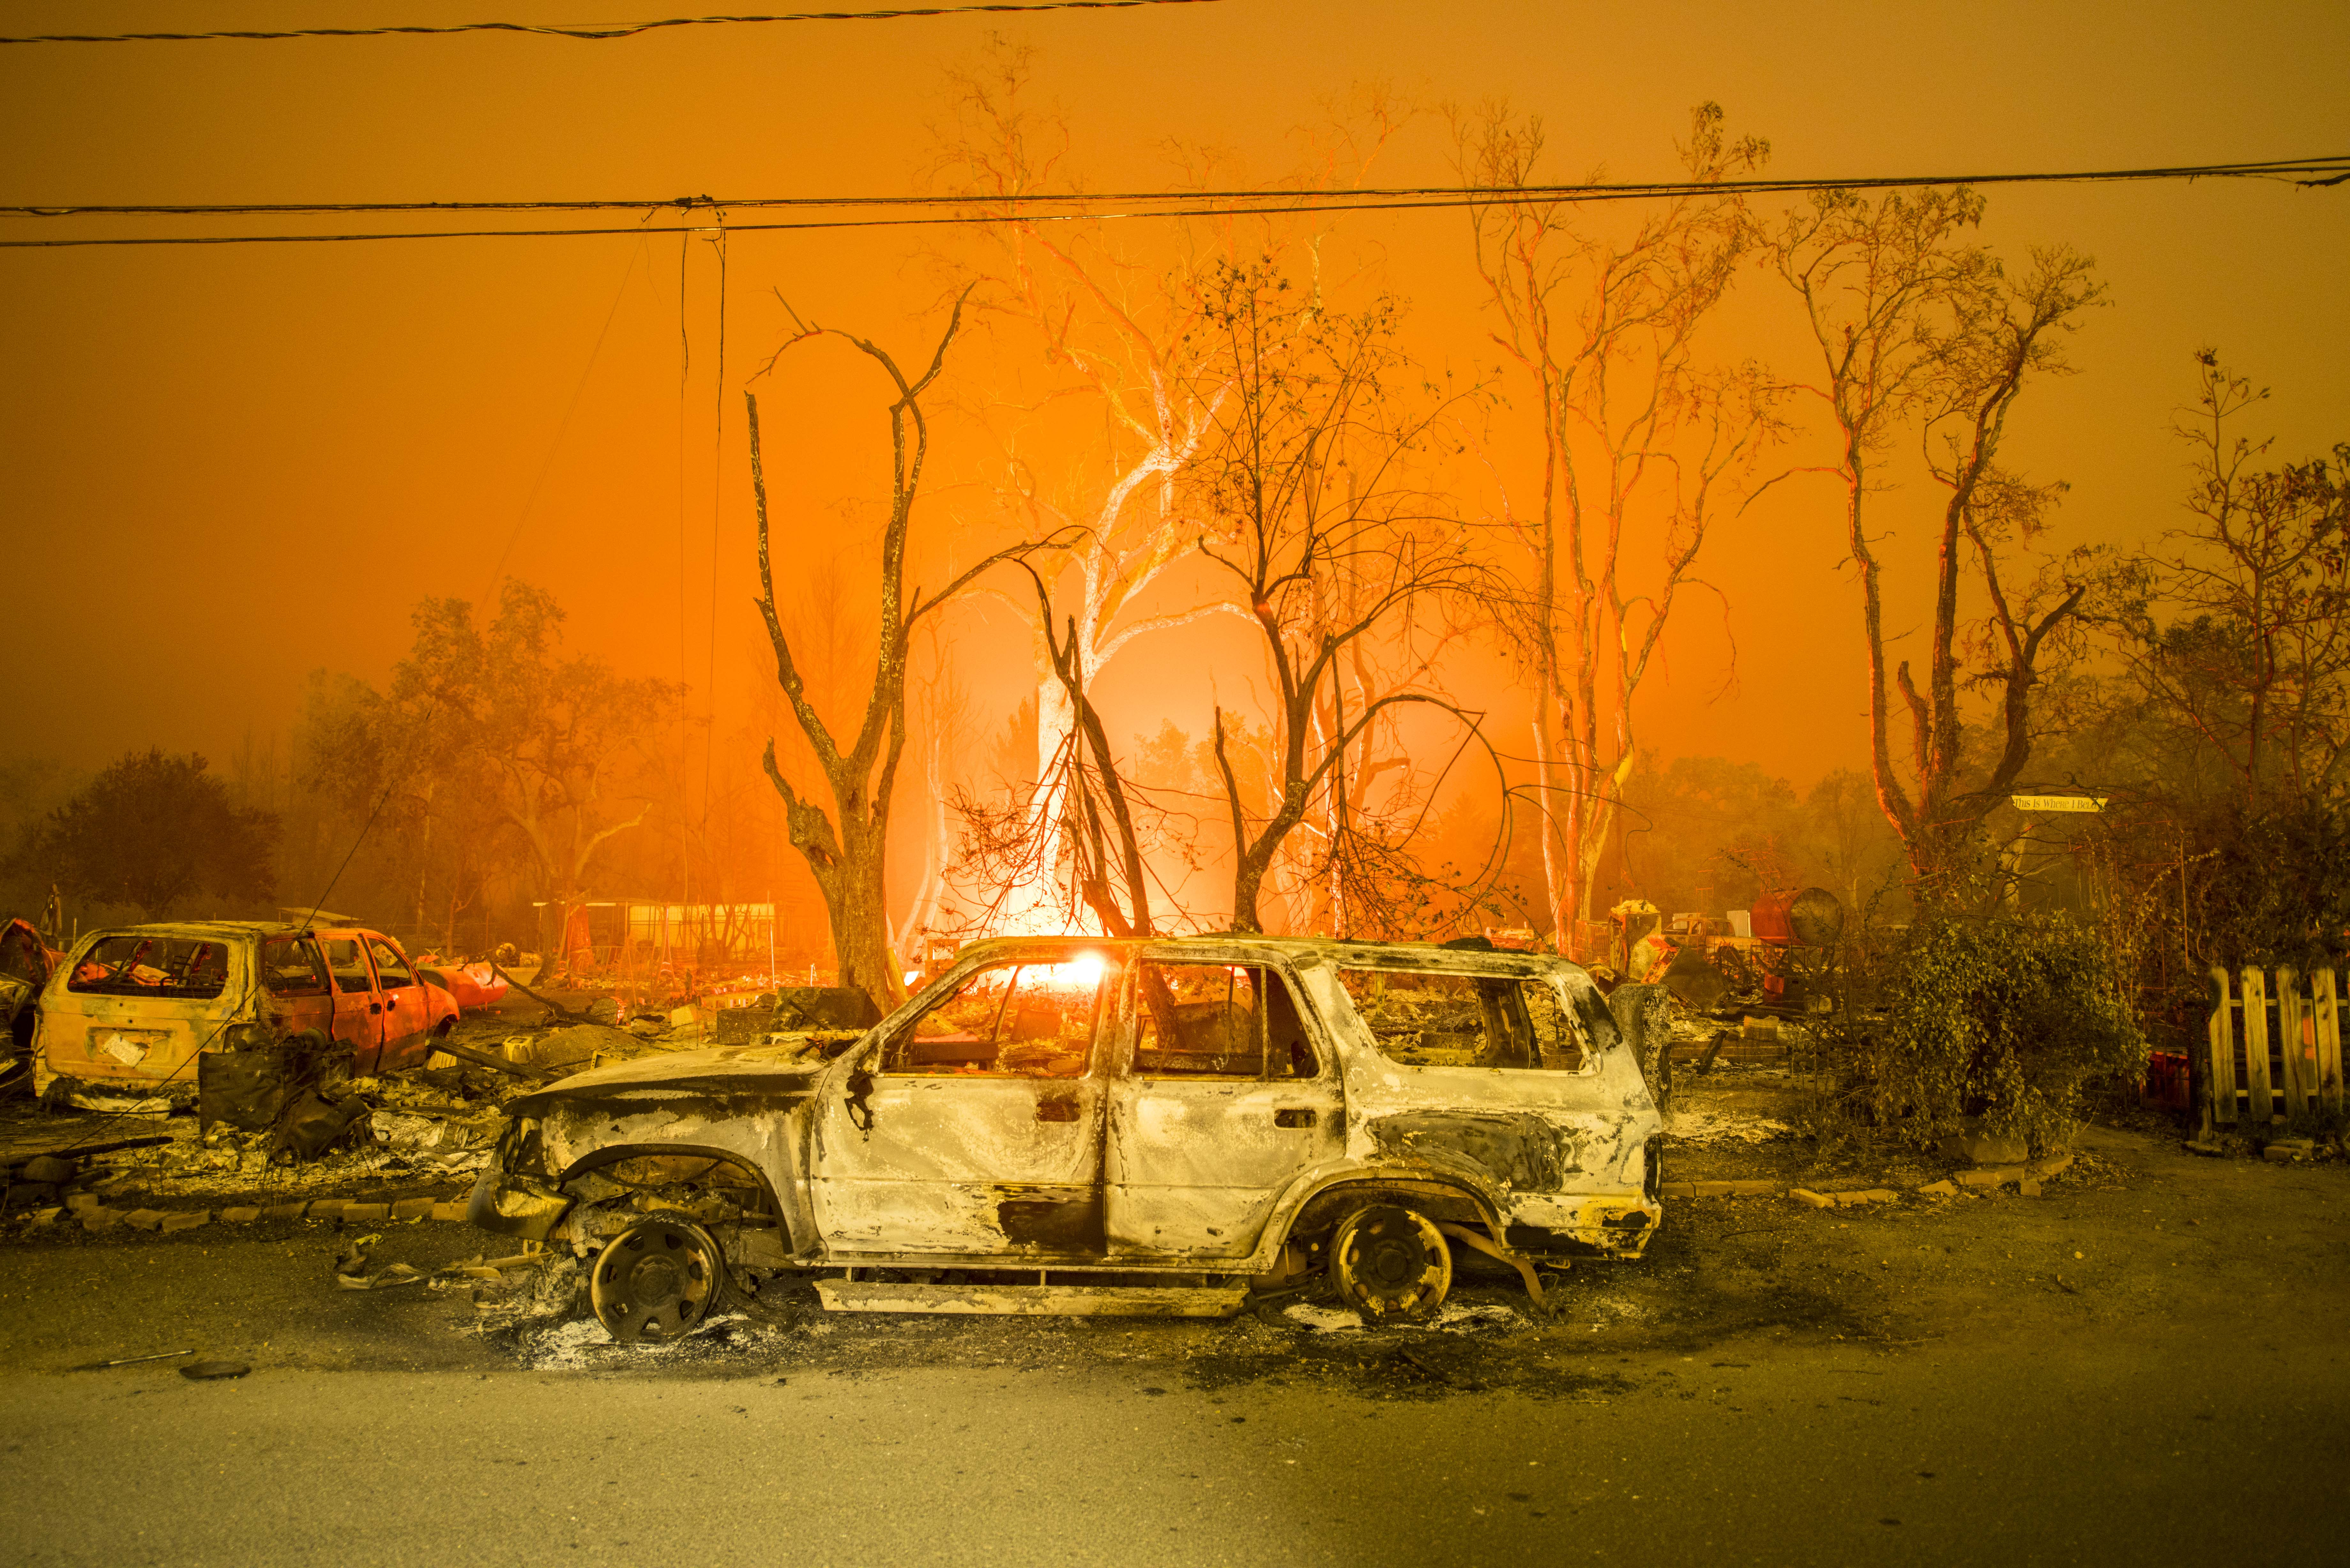 A burned out truck sits in front of a destroyed structure on Sept. 13, 2015 in Middletown, Calif.